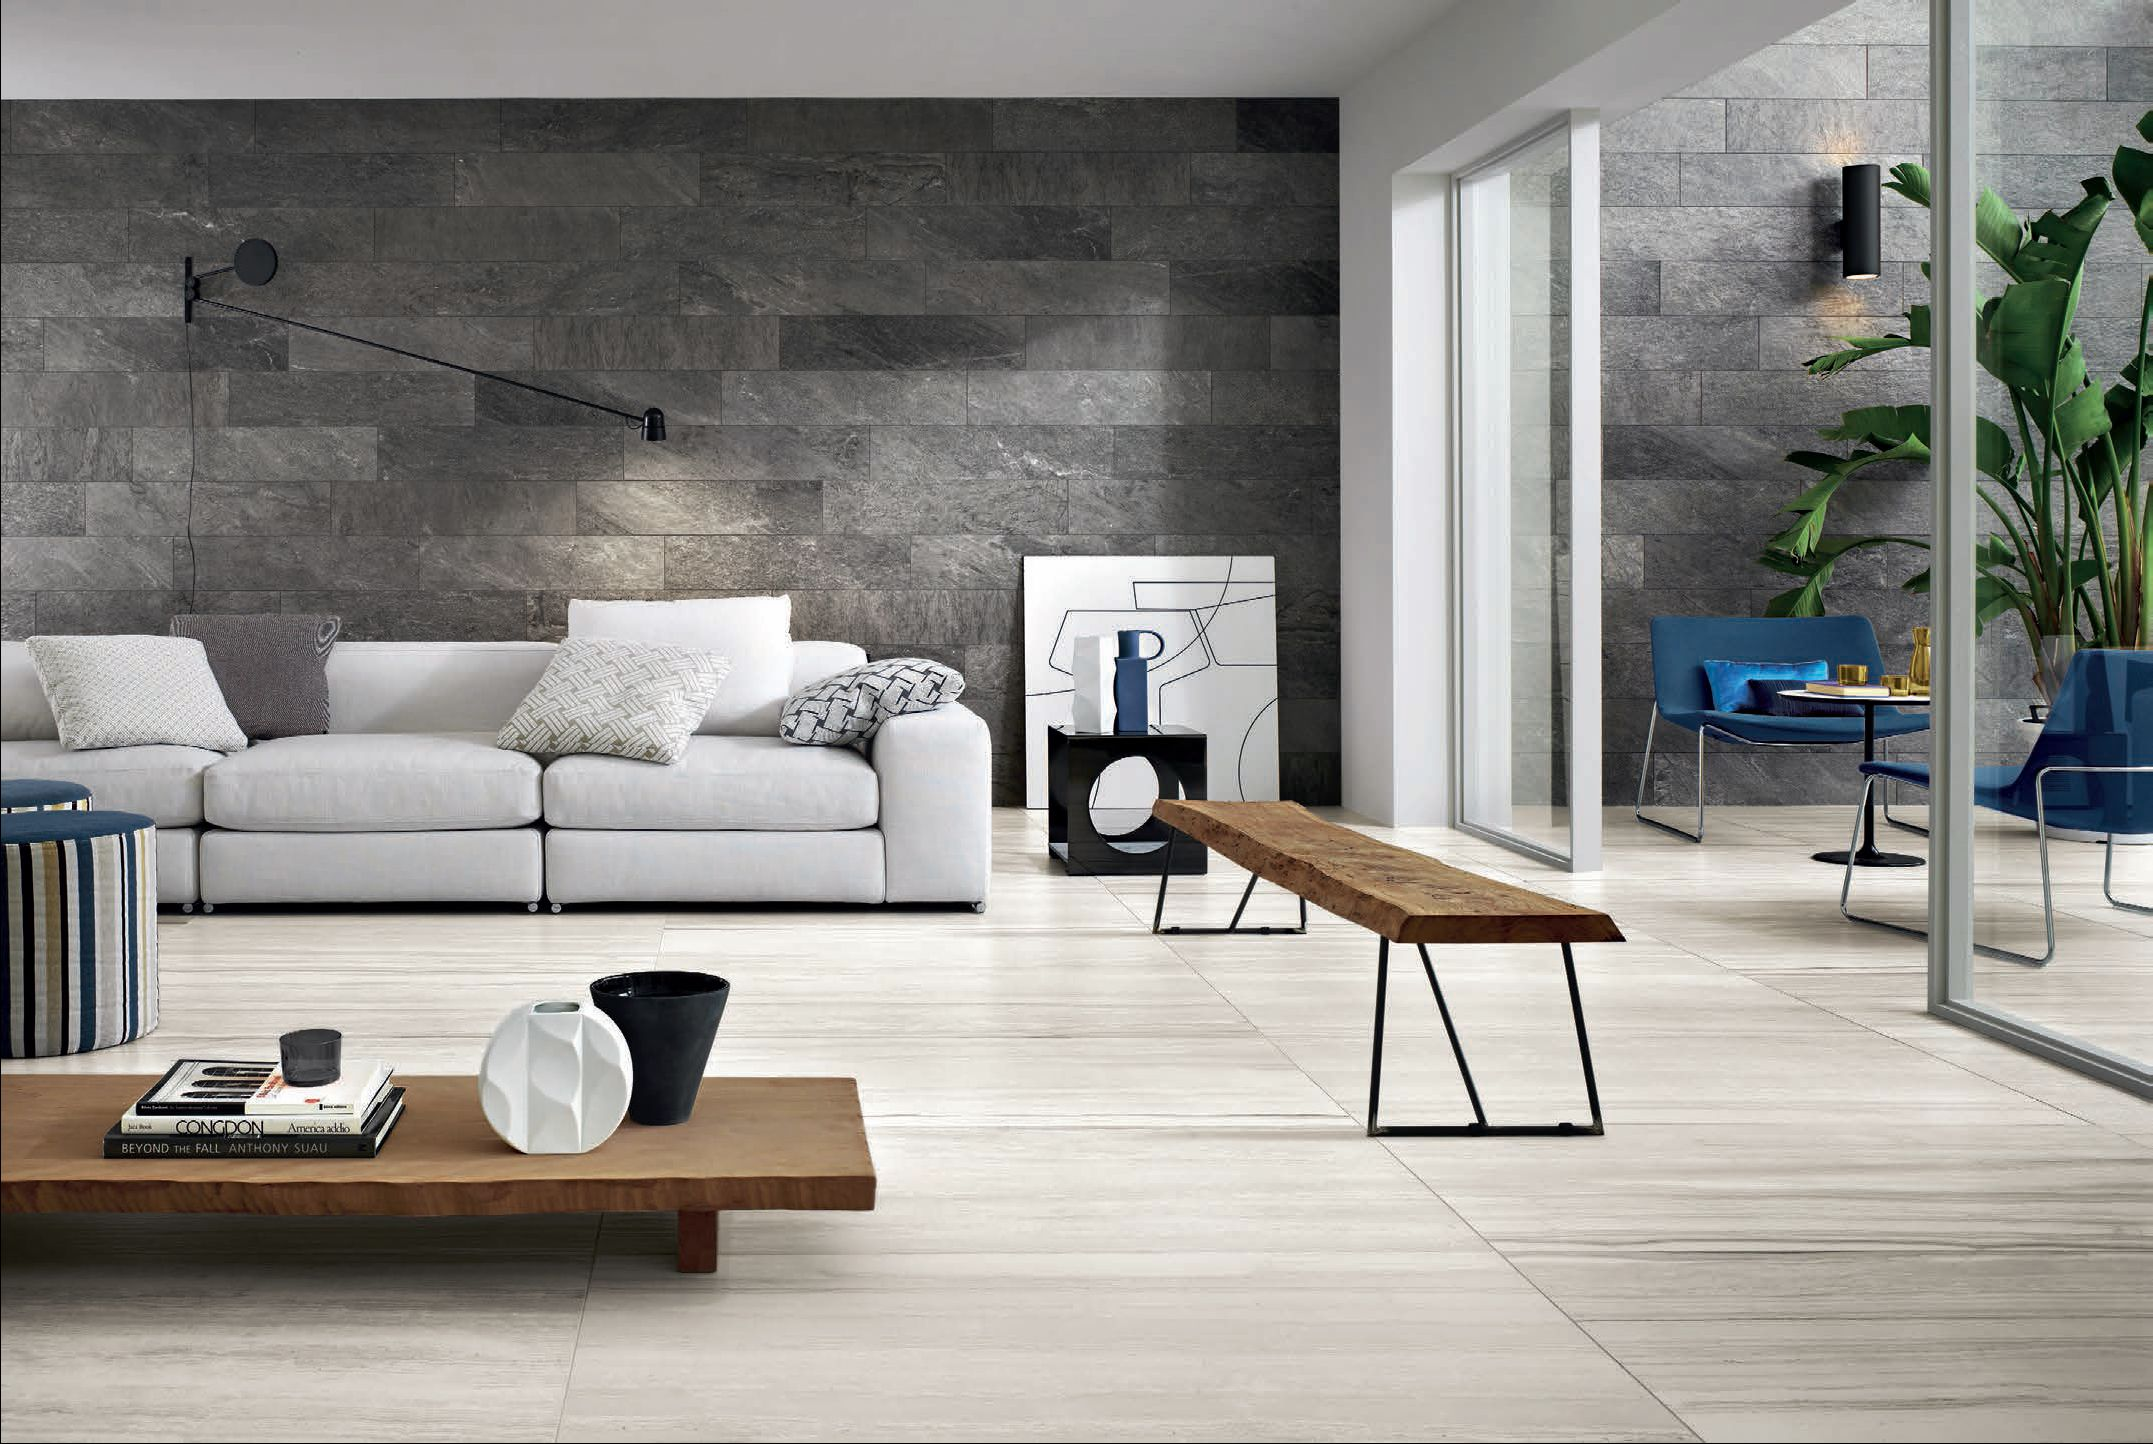 Horizon White Striato Tile X Floor Or Walls Your Pick - Living room wall tiles design